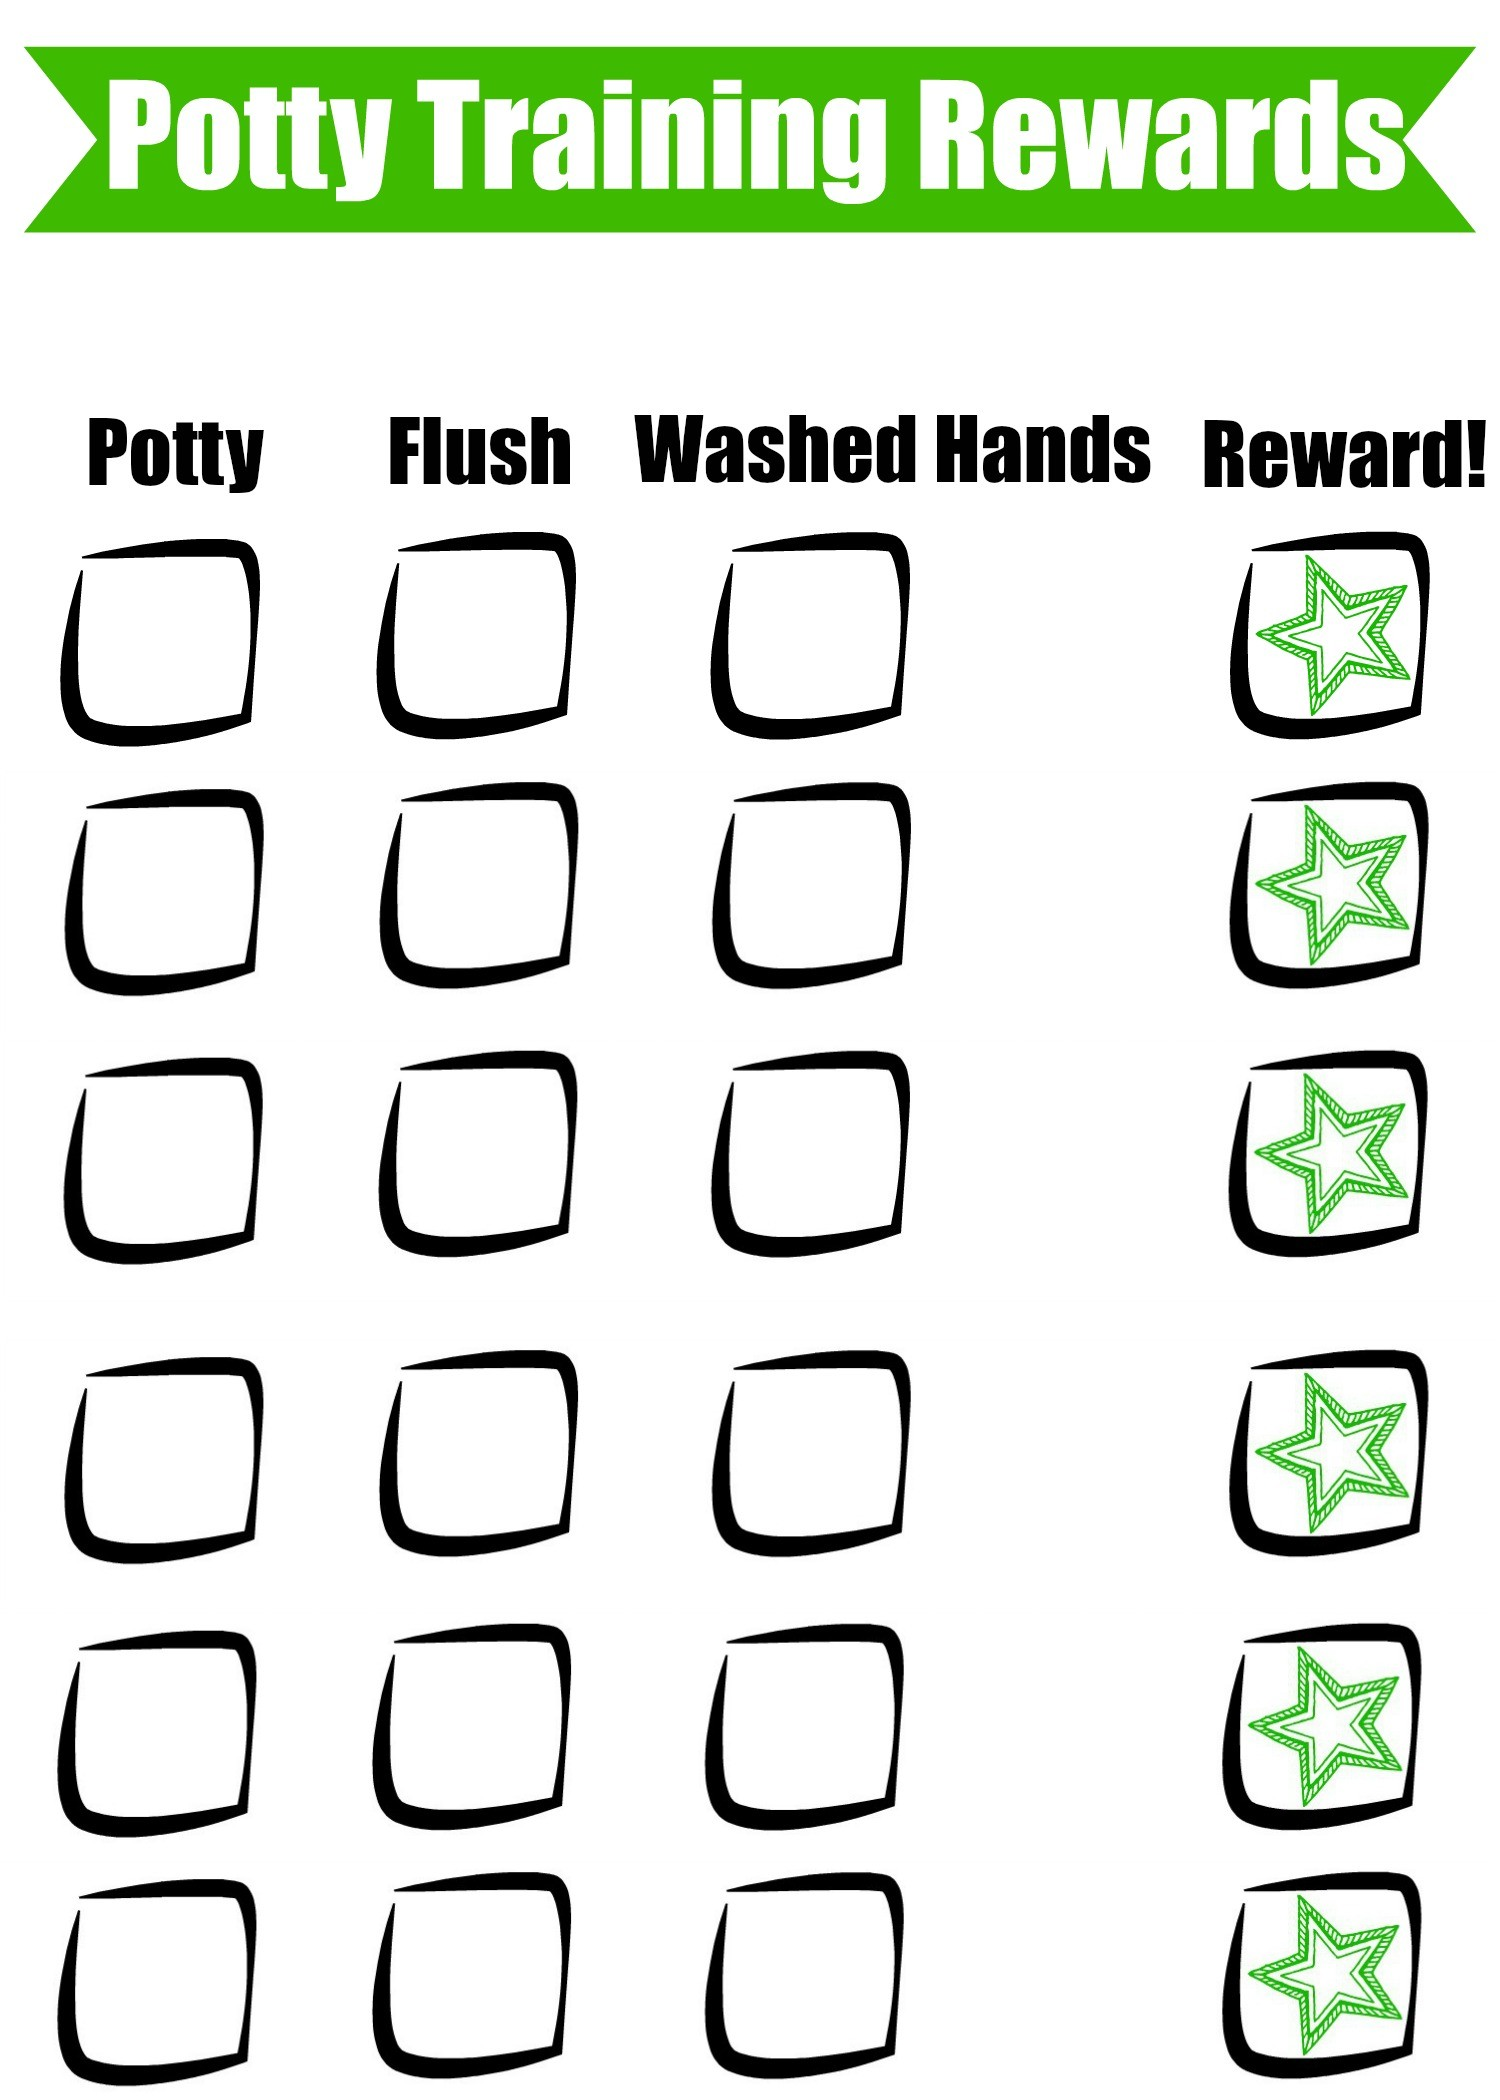 potty training reward method chart beauty through potty training reward chart